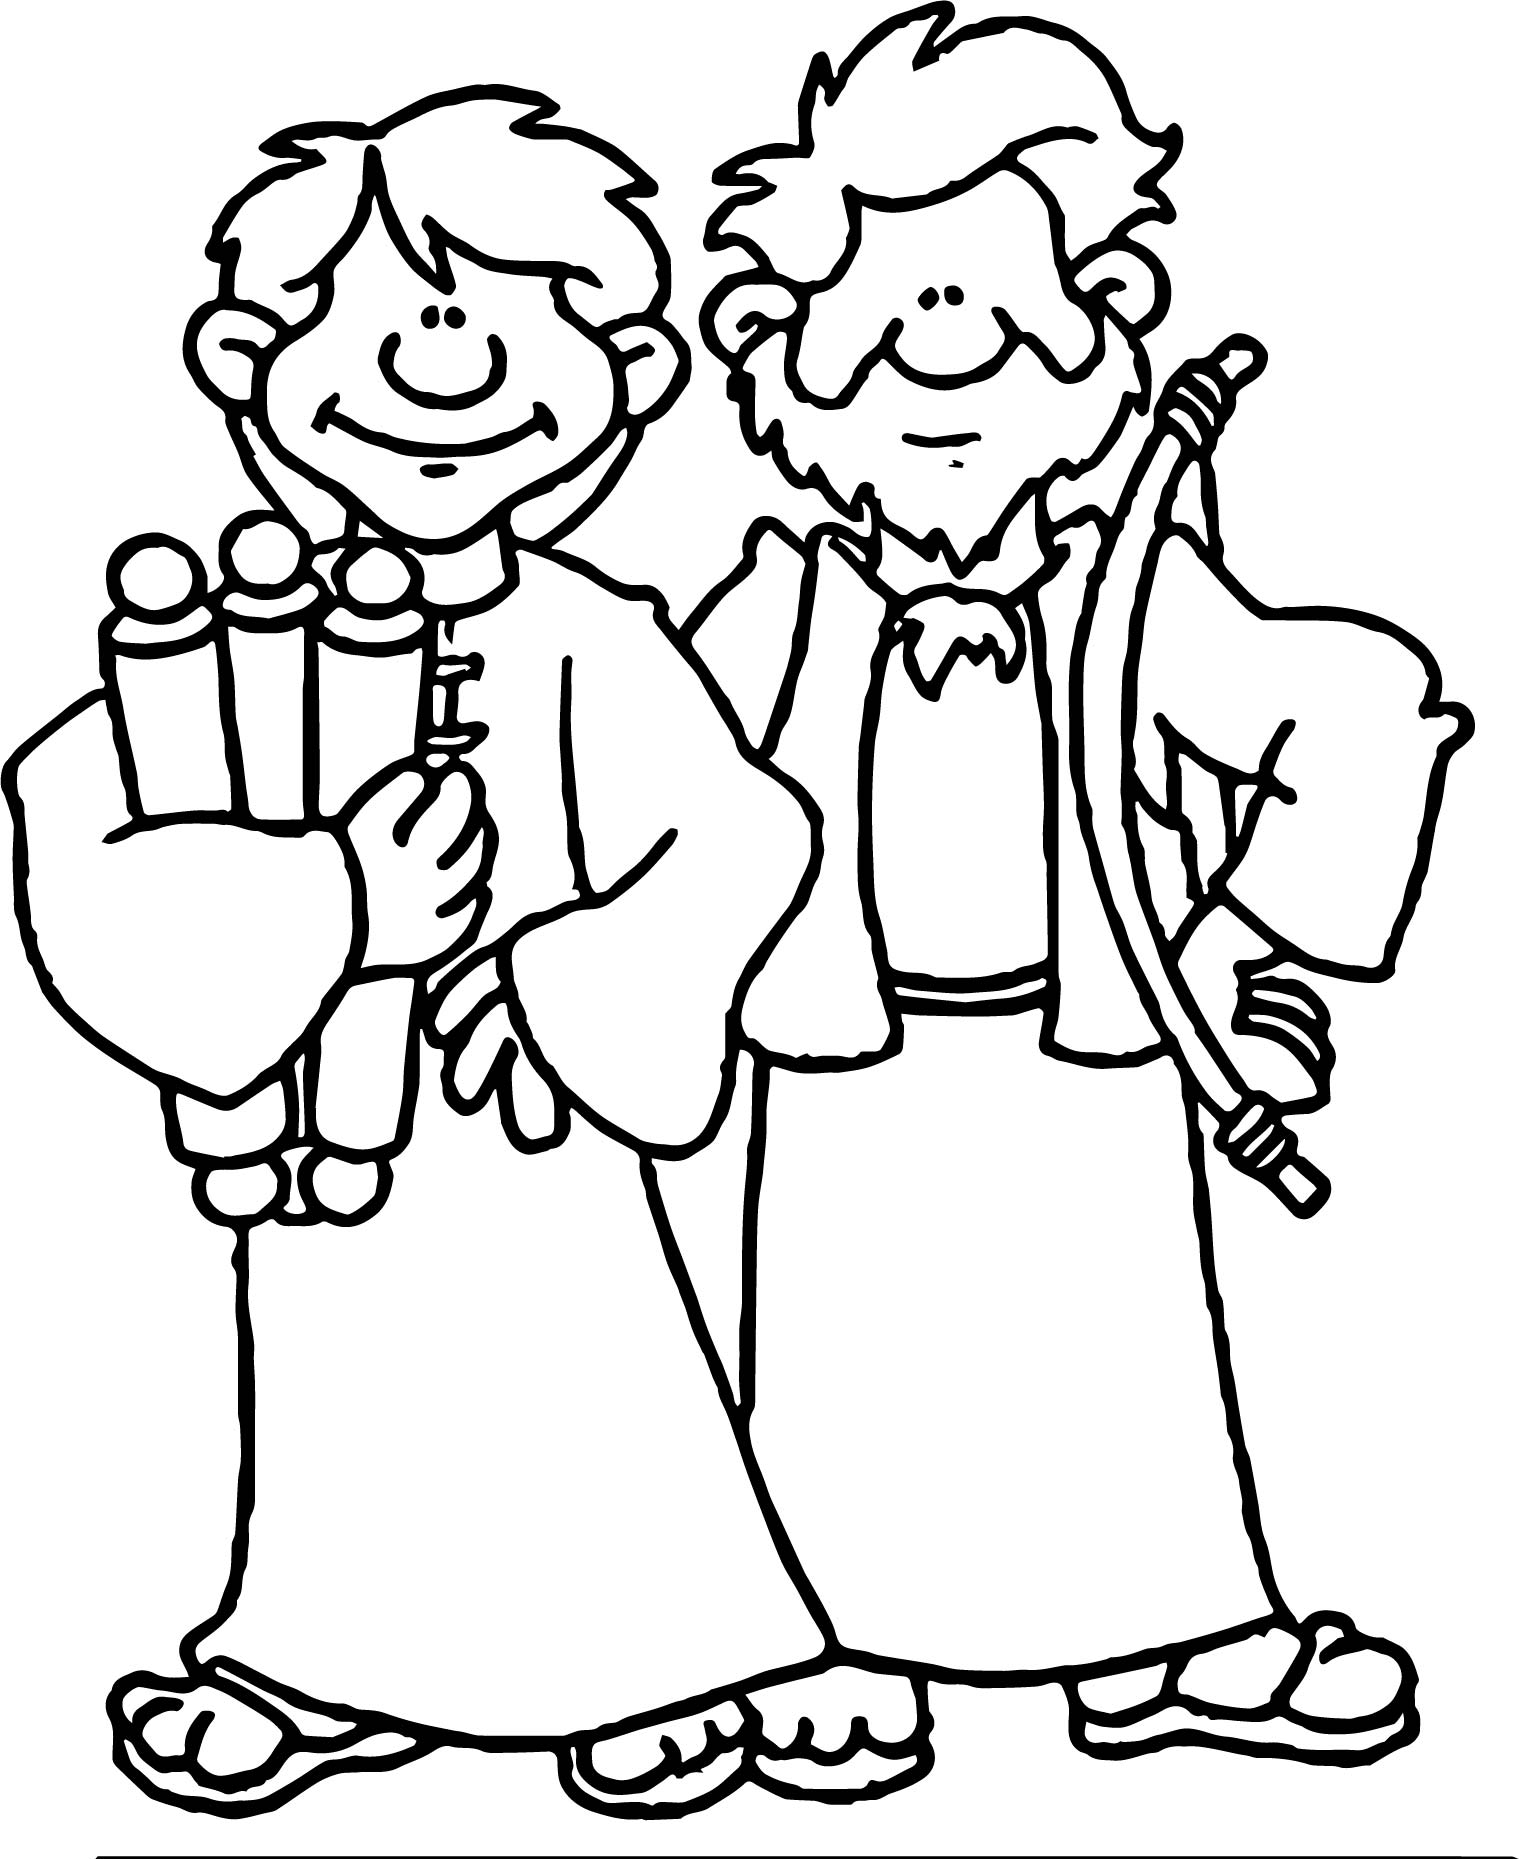 1519x1859 Apostle Paul Two People Coloring Page Wecoloringpage